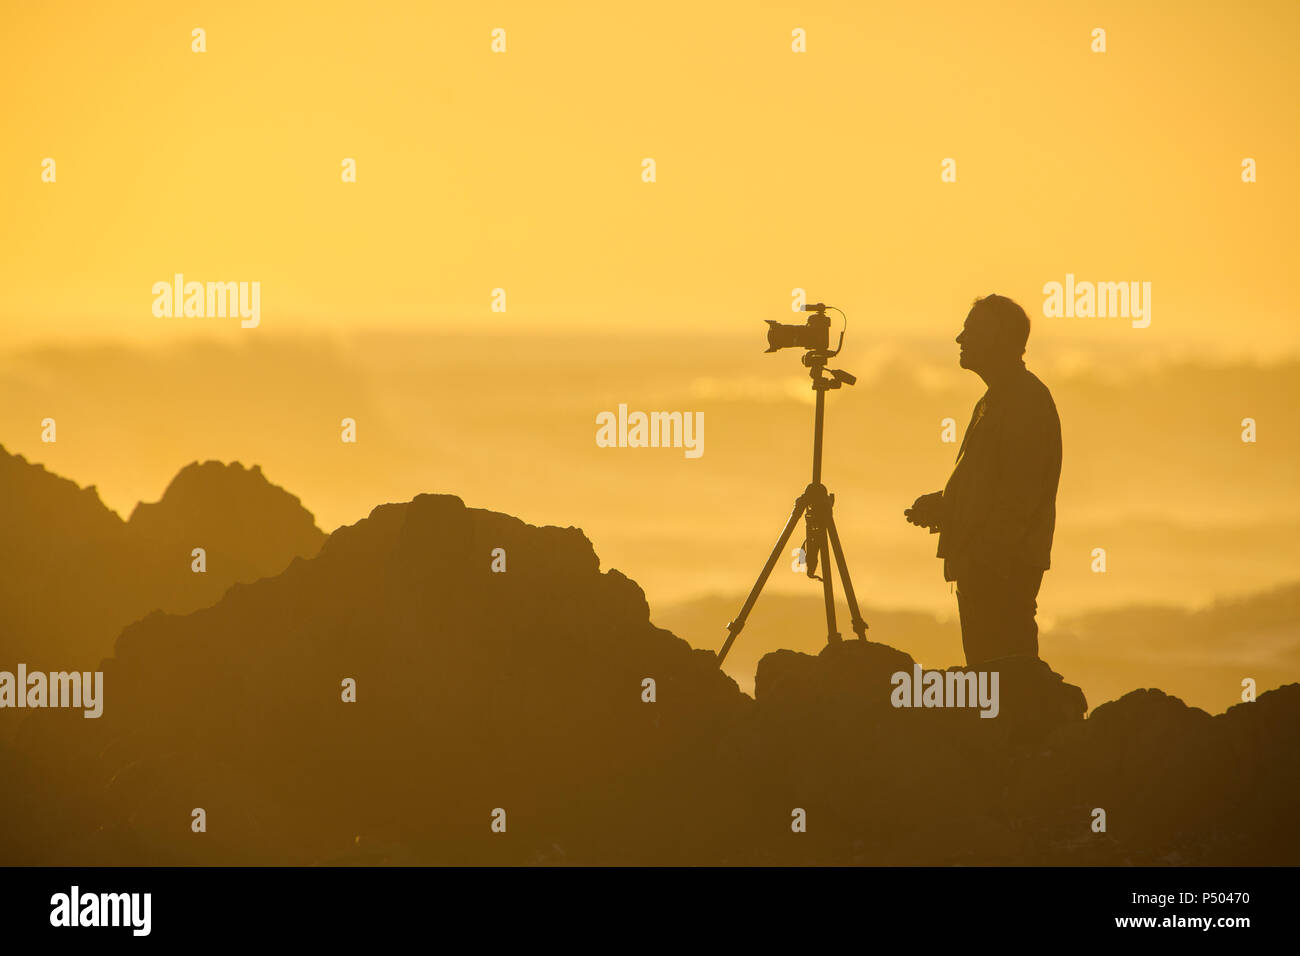 Africa, South Africa, Cape Town, Silhouette of photographer at beach in the evening light - Stock Image